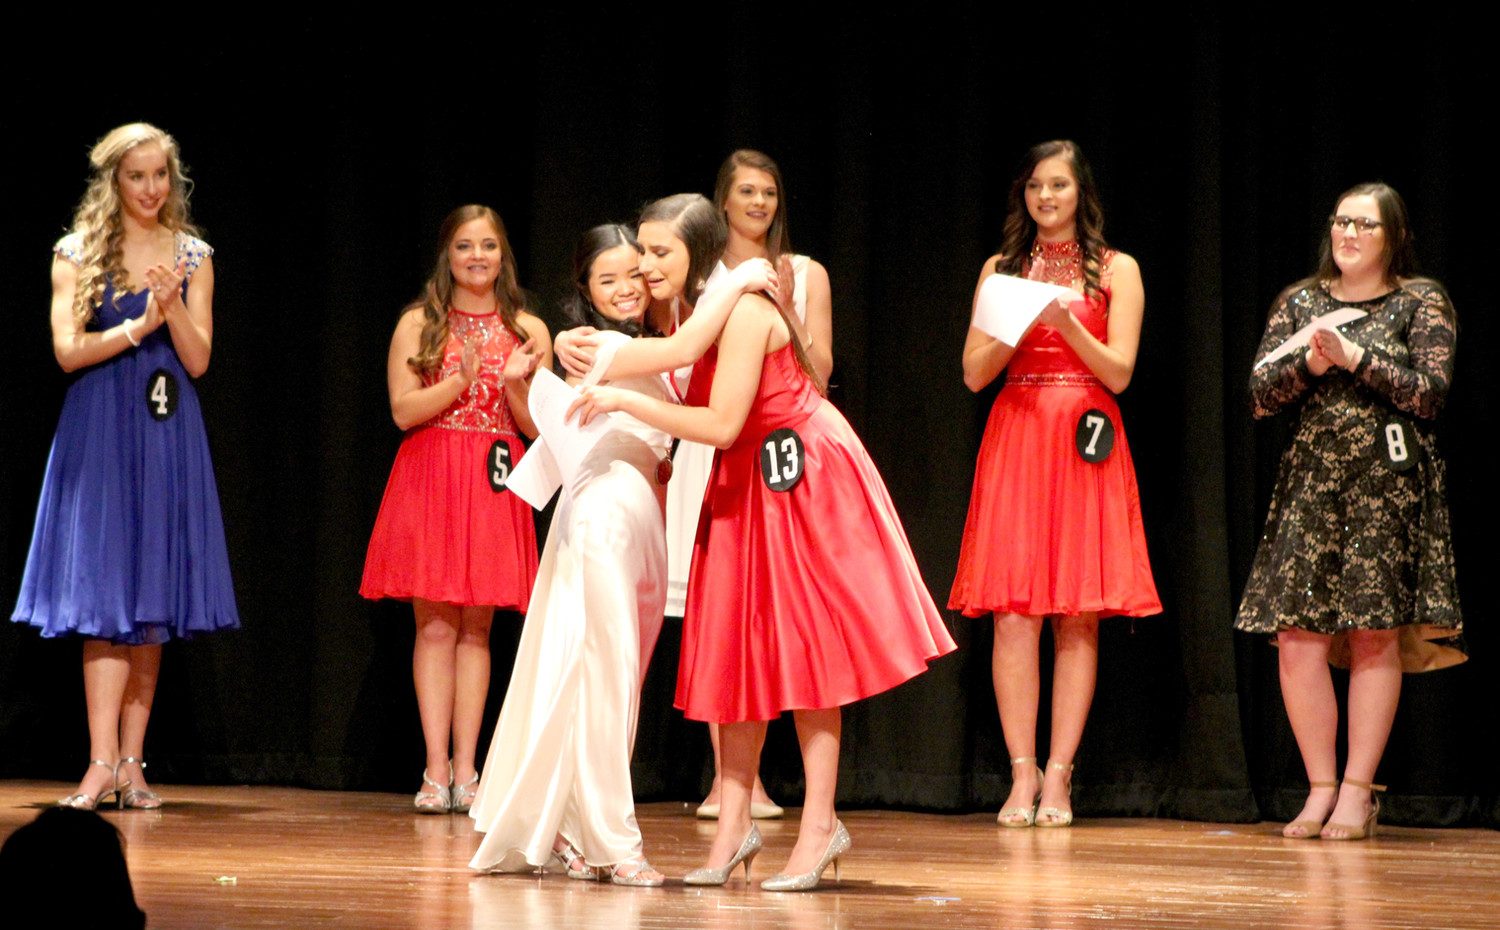 PASSING on her title, 2018 Distinguished Young Woman of Cleveland Jasmine Ngo, left, congratulates the 2019 title-holder, Elena Burton.